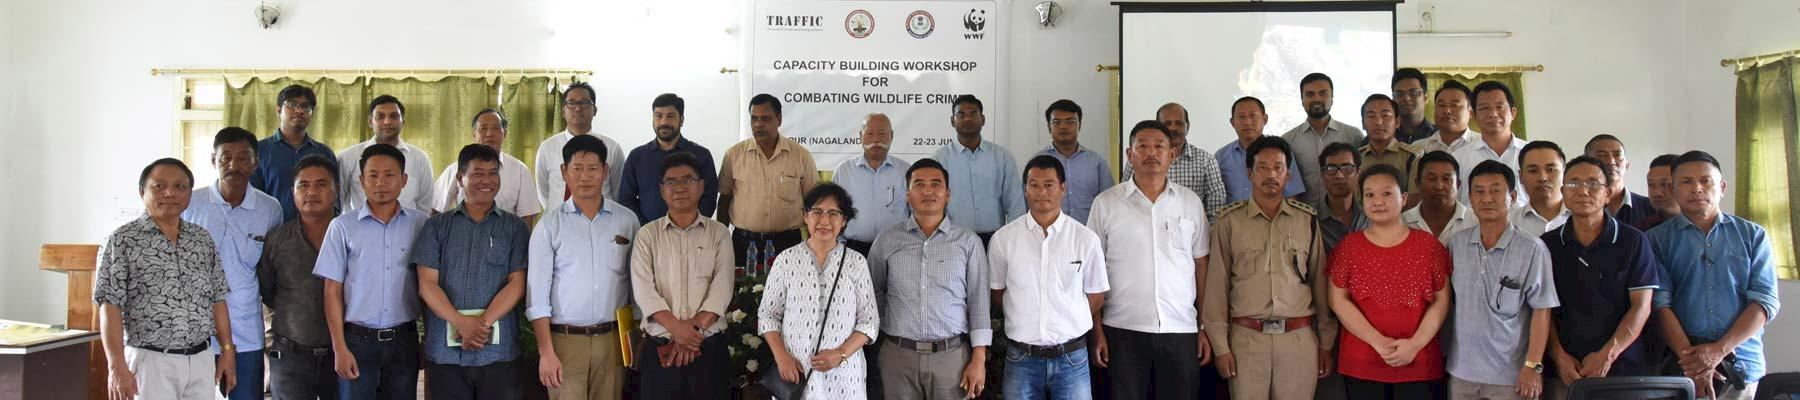 Workshop participants in Nagaland © TRAFFIC